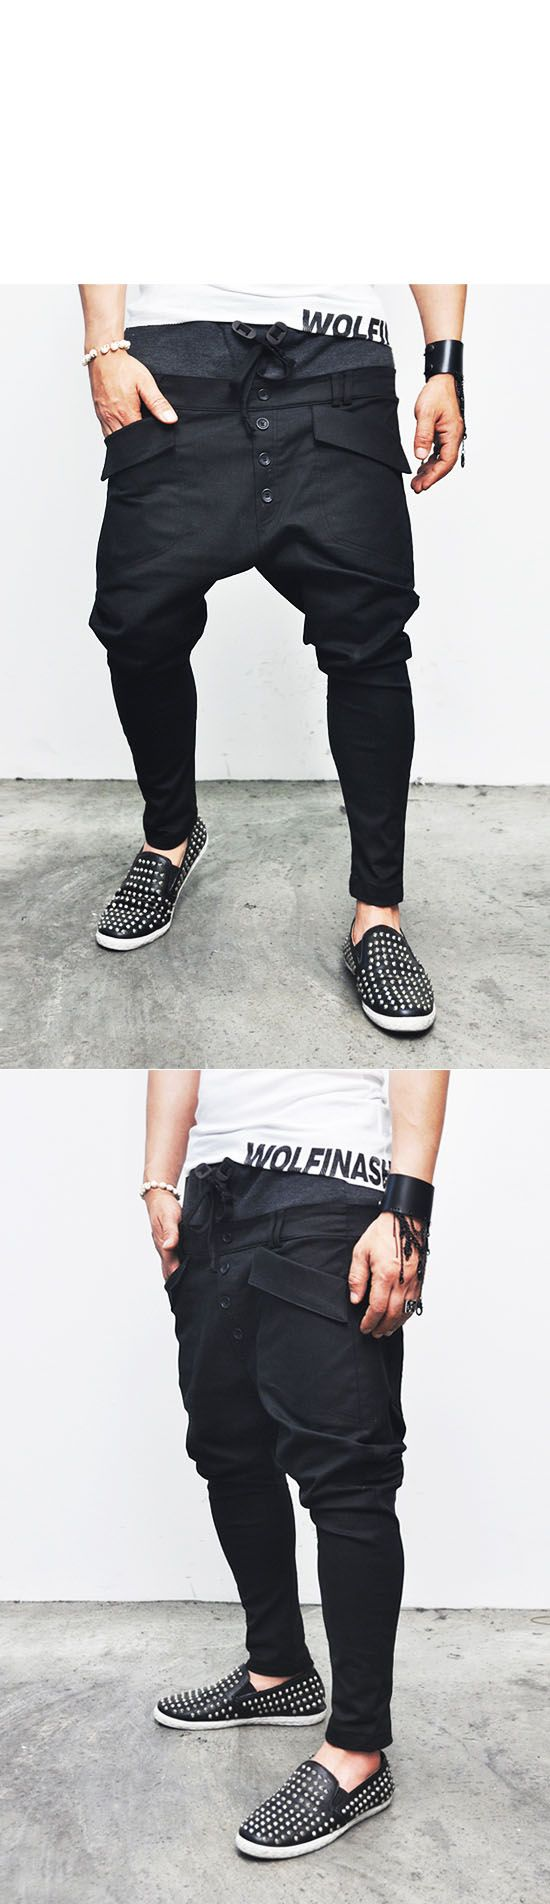 Bottoms :: Sweatpants :: Hipster's Double-layered Mix Drop Crotch Baggy-Pants 80 - Mens Fashion Clothing For An Attractive Guy Look